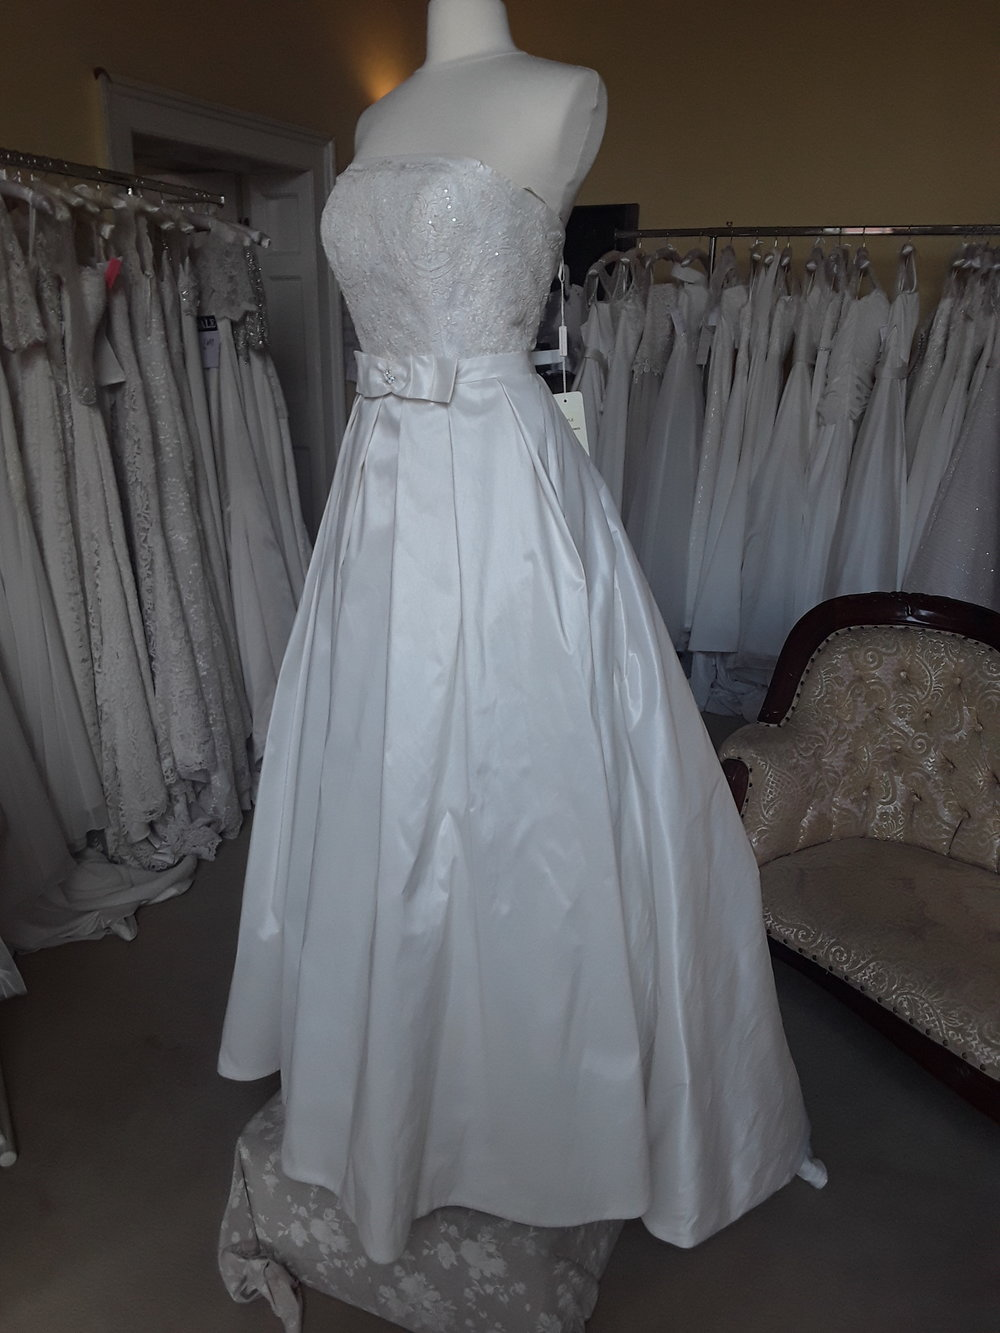 Charlotte Balbier A-line Taffeta Dress  Colour: Ivory  Size: 10  Was €1,399 now €499  Ref: E101